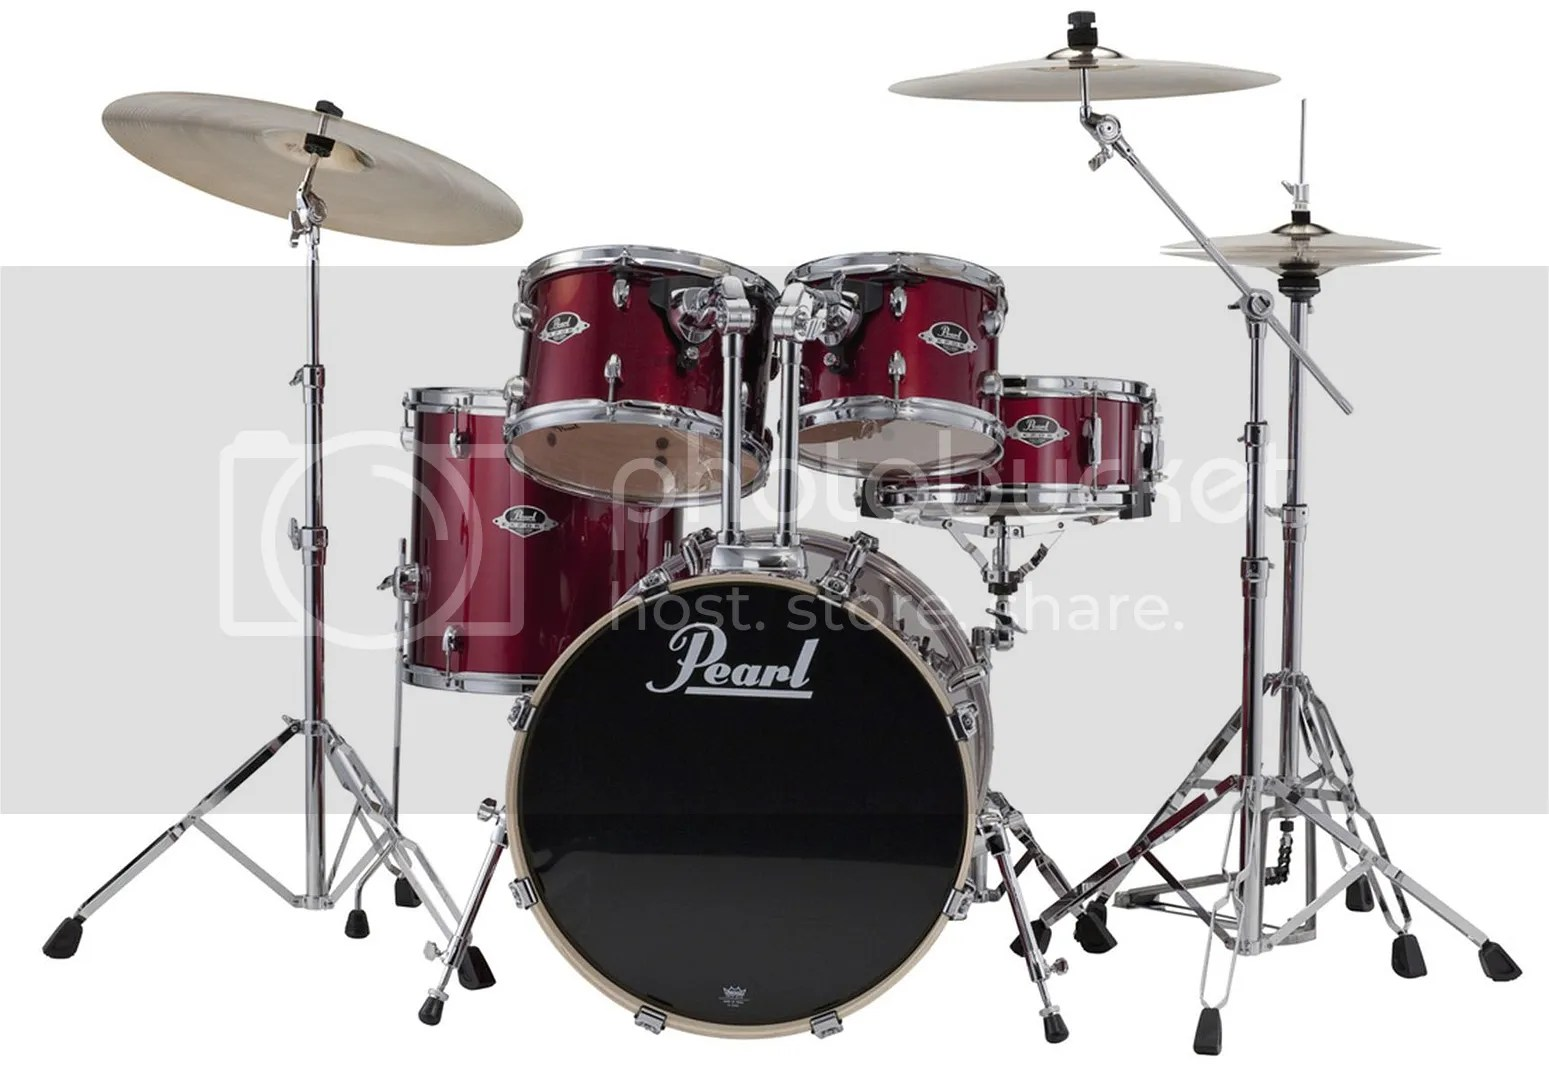 Pearl Export Drum Set 5 Piece Kit w  Hardware Red Wine Finish EXX705     photo PearlExportRedWine2 zps82cd4aa8 jpg